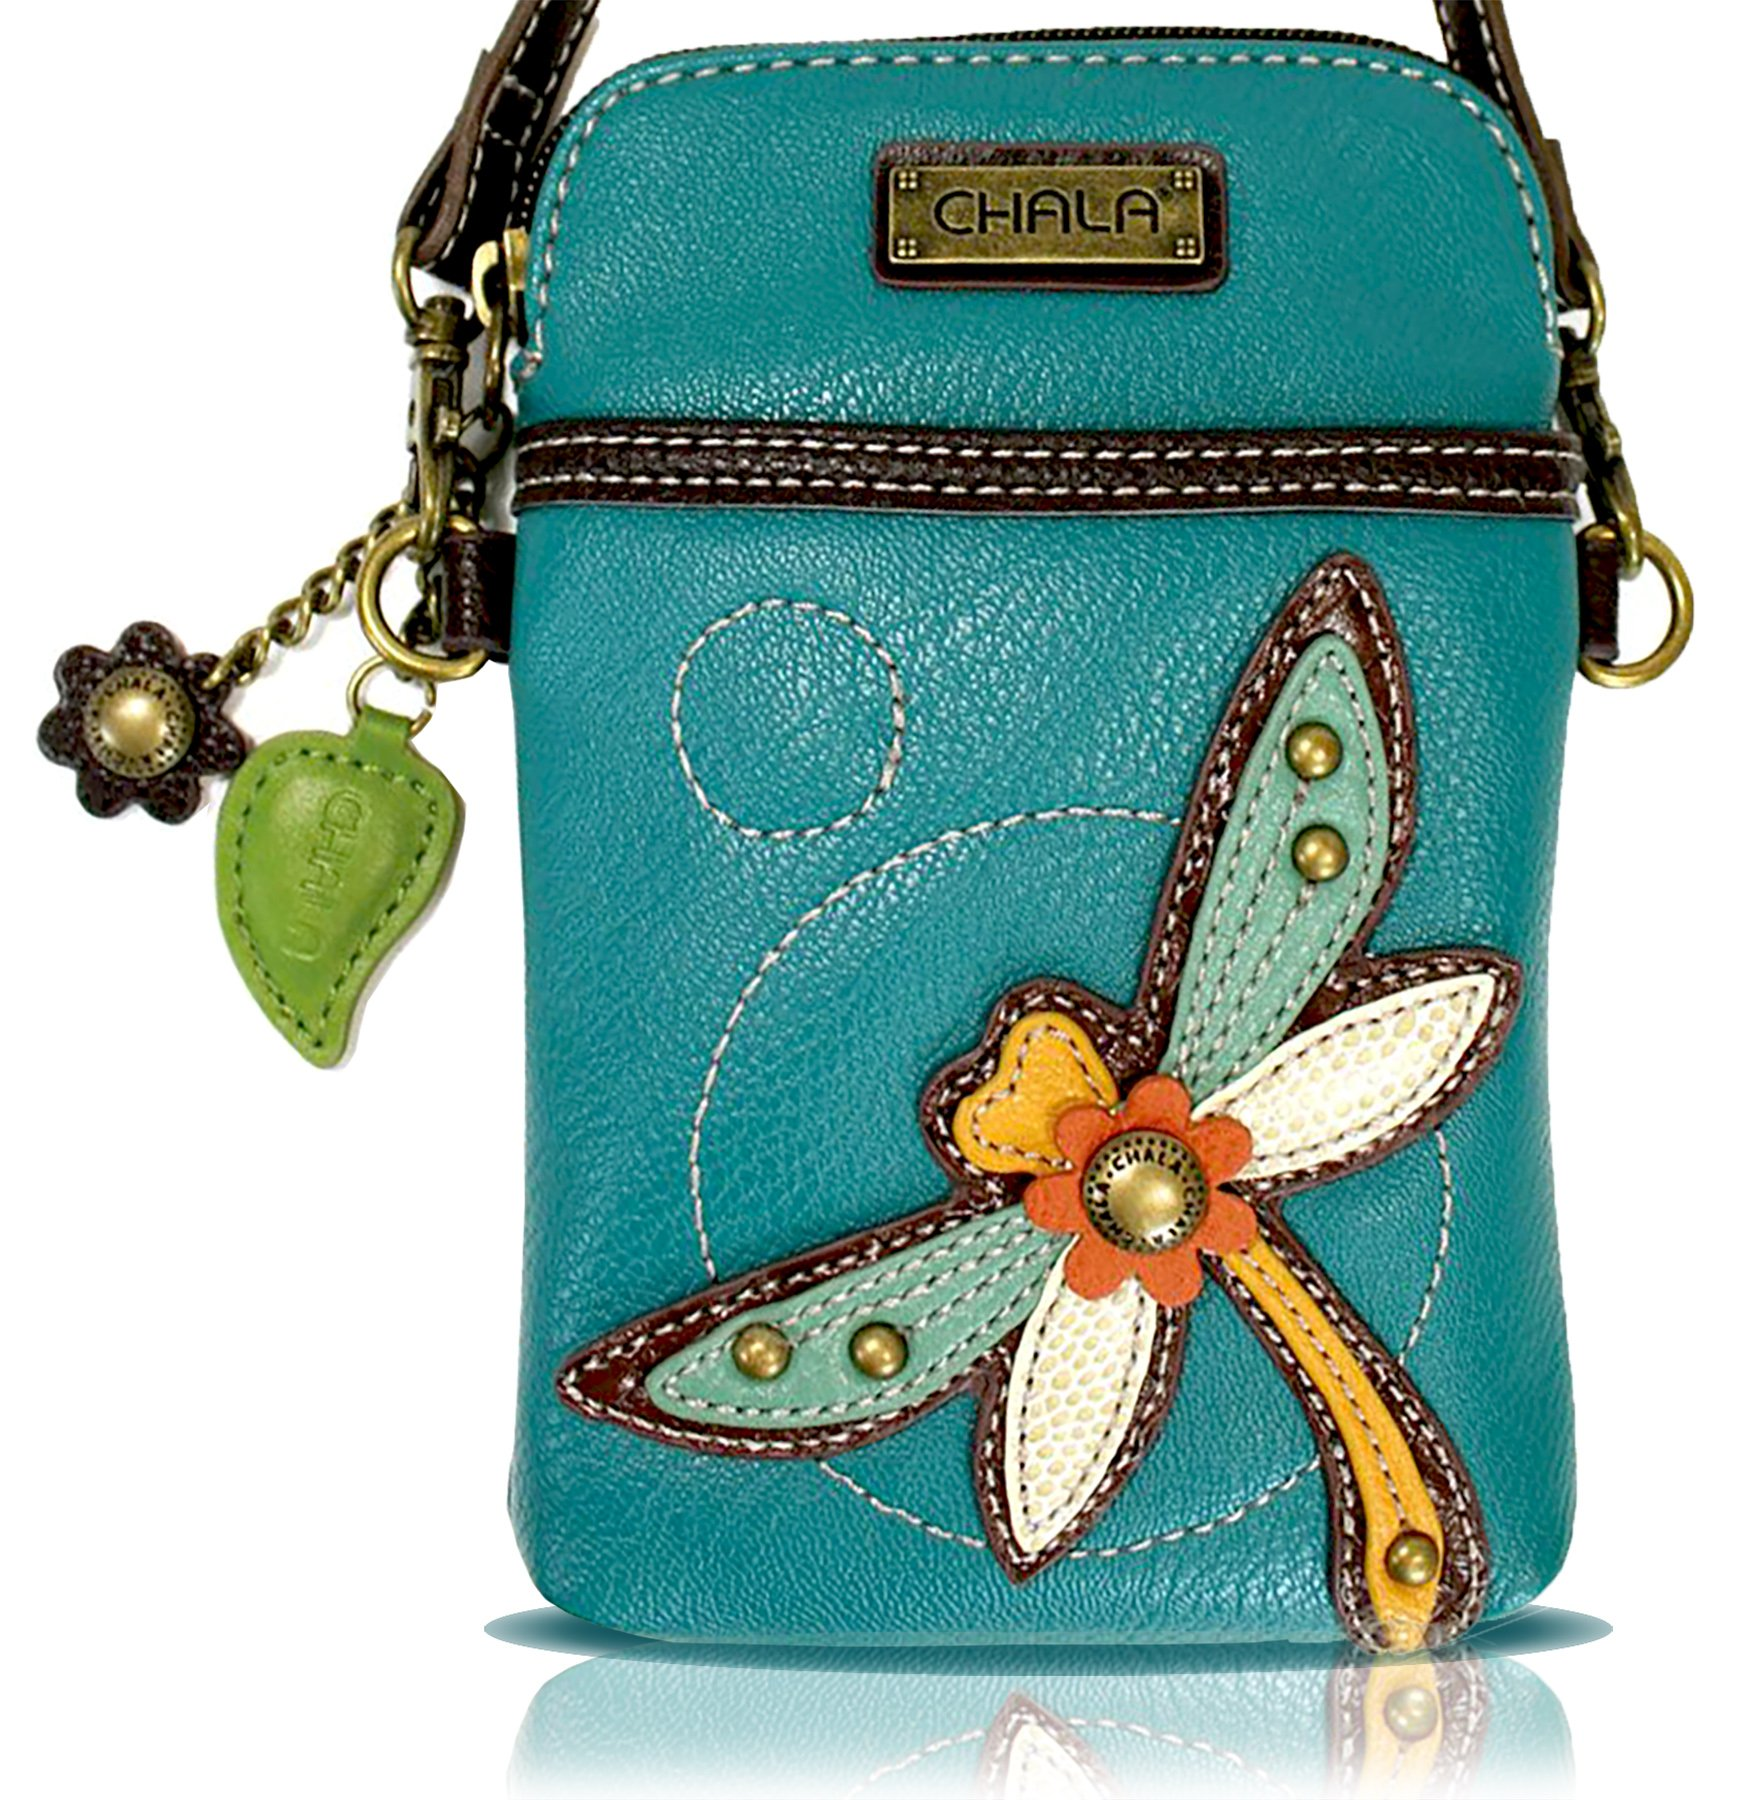 Chala Crossbody Cell Phone Purse - Women PU Leather Multicolor Handbag with Adjustable Strap - Dragonfly - Turquoise by CHALA